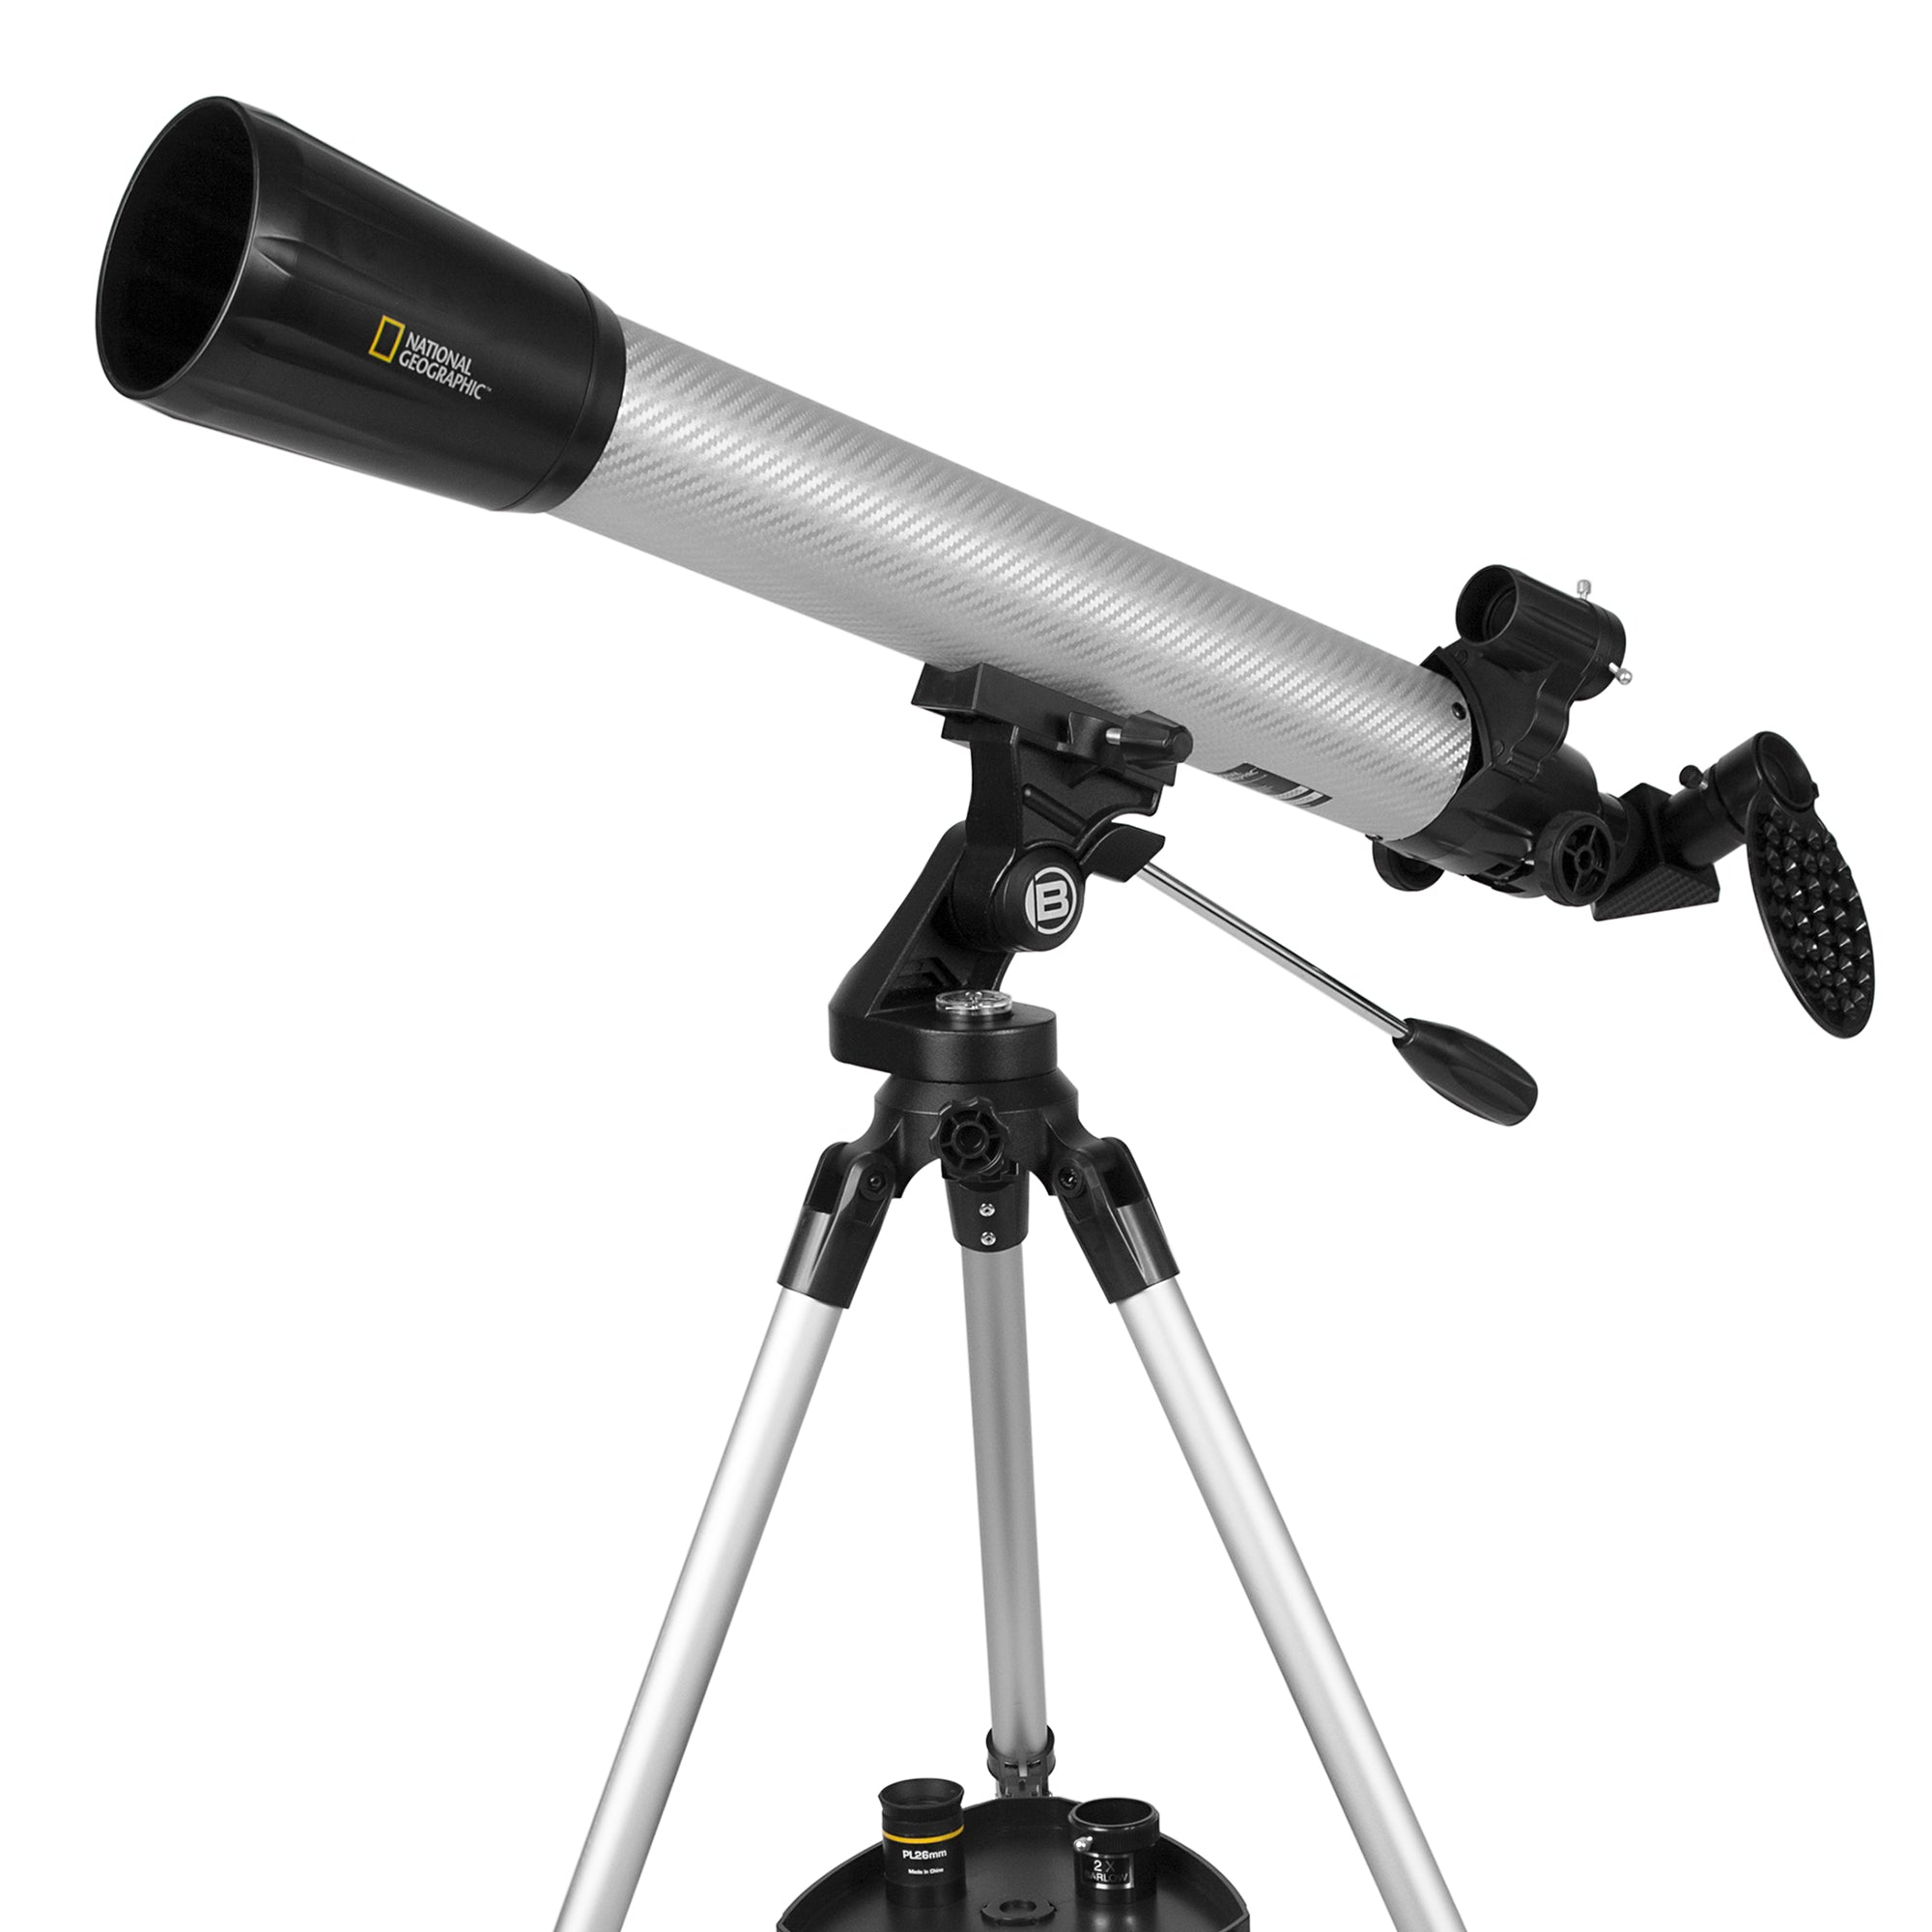 This is an image of a telescope